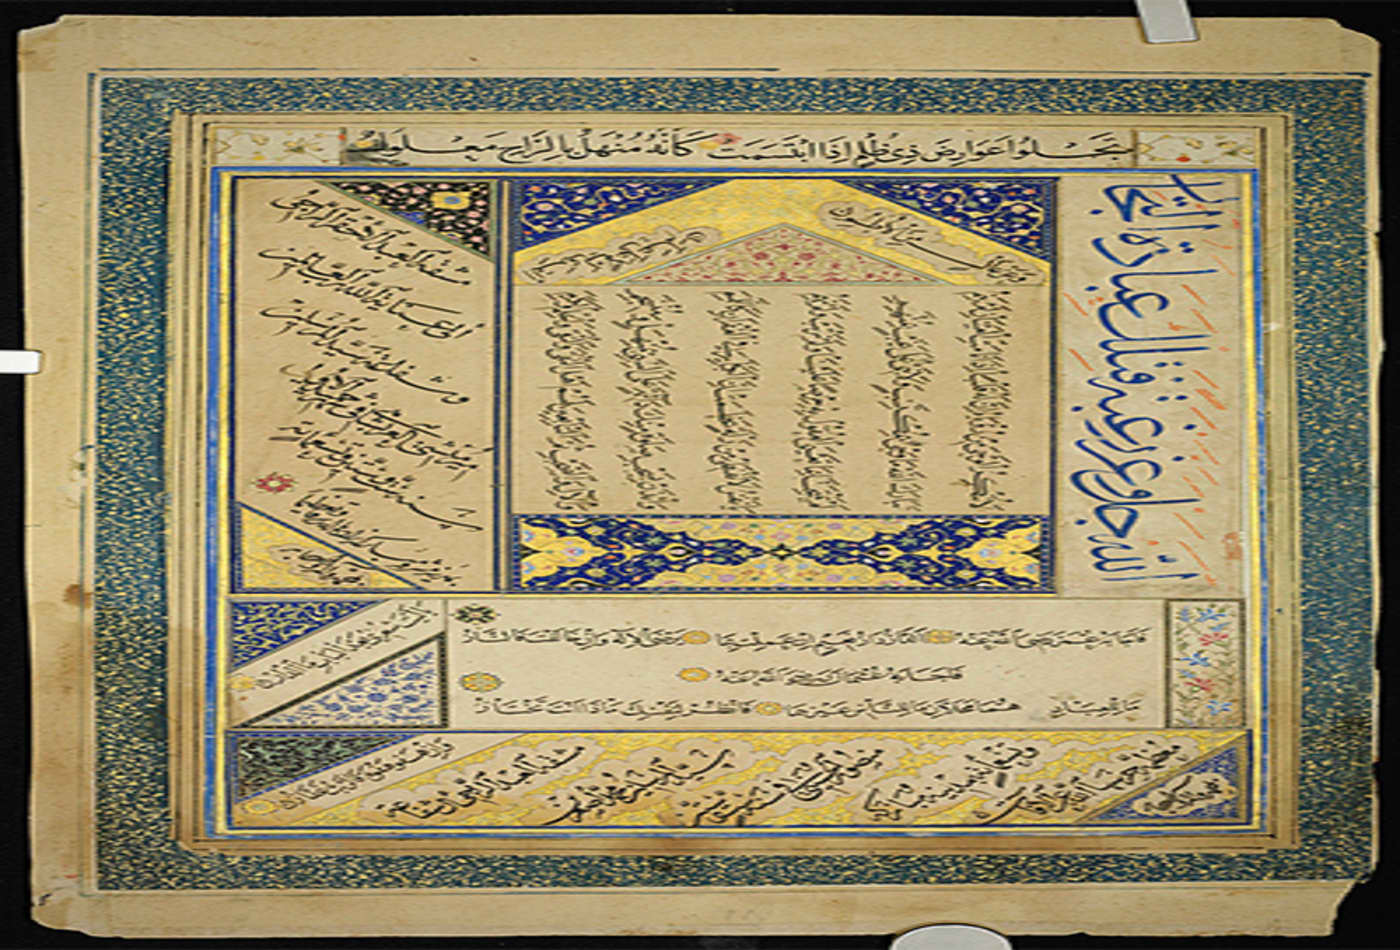 48743541 Investing-in-turkish-treaures-calligraphic-page.jpg